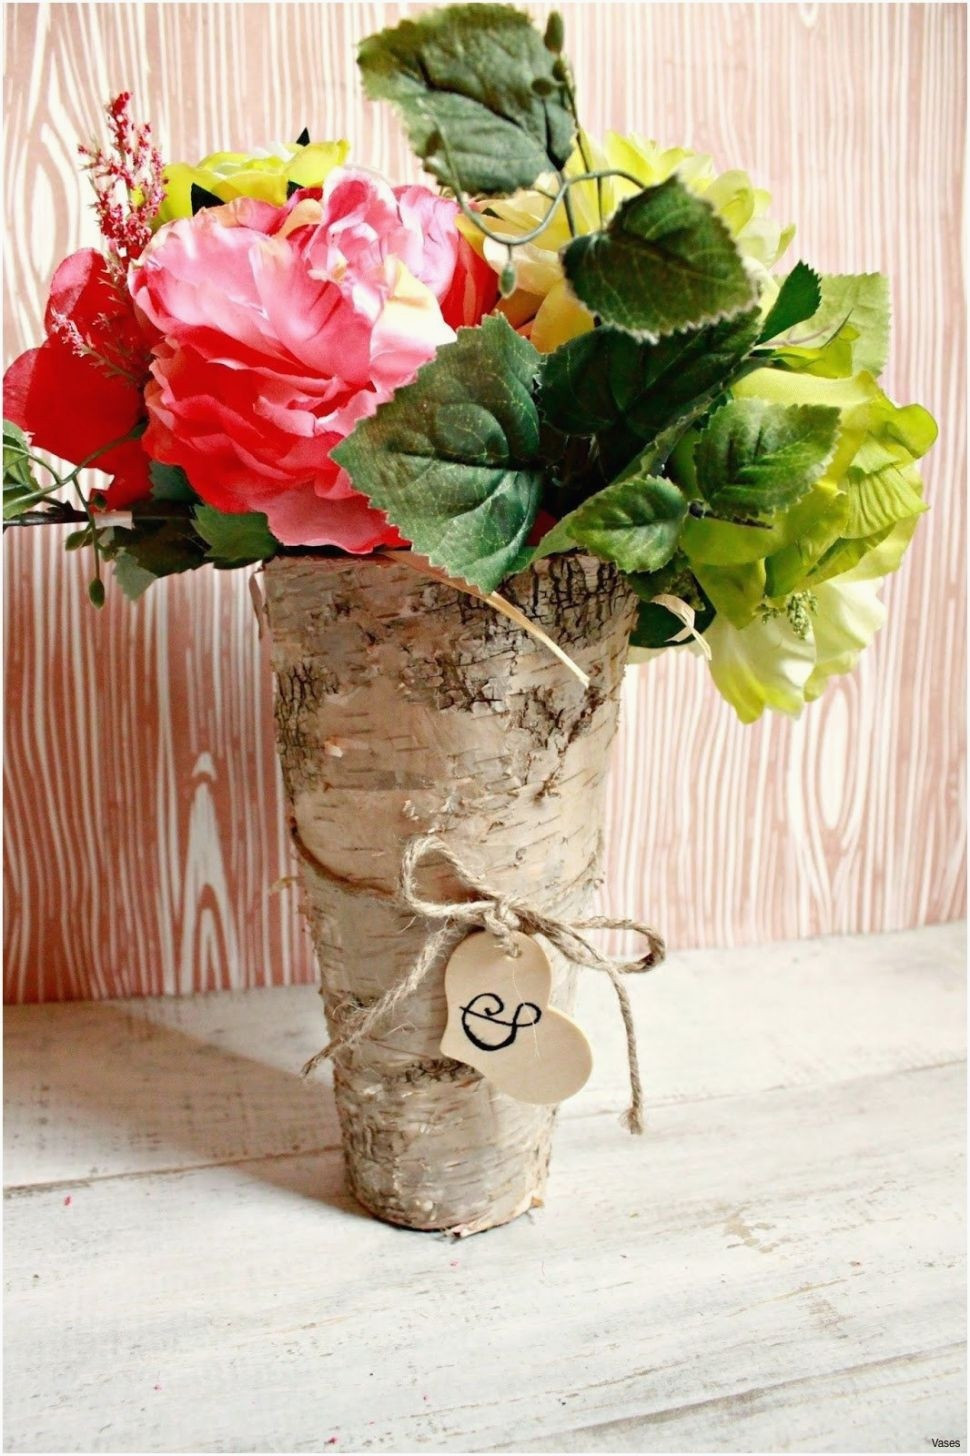 fake flowers in vase with fake water of 15 adorable artificial floral arrangements for dining table thunder for wed beautiful wedding floral decorations silk bouquets h vases diy wood vase i 0d